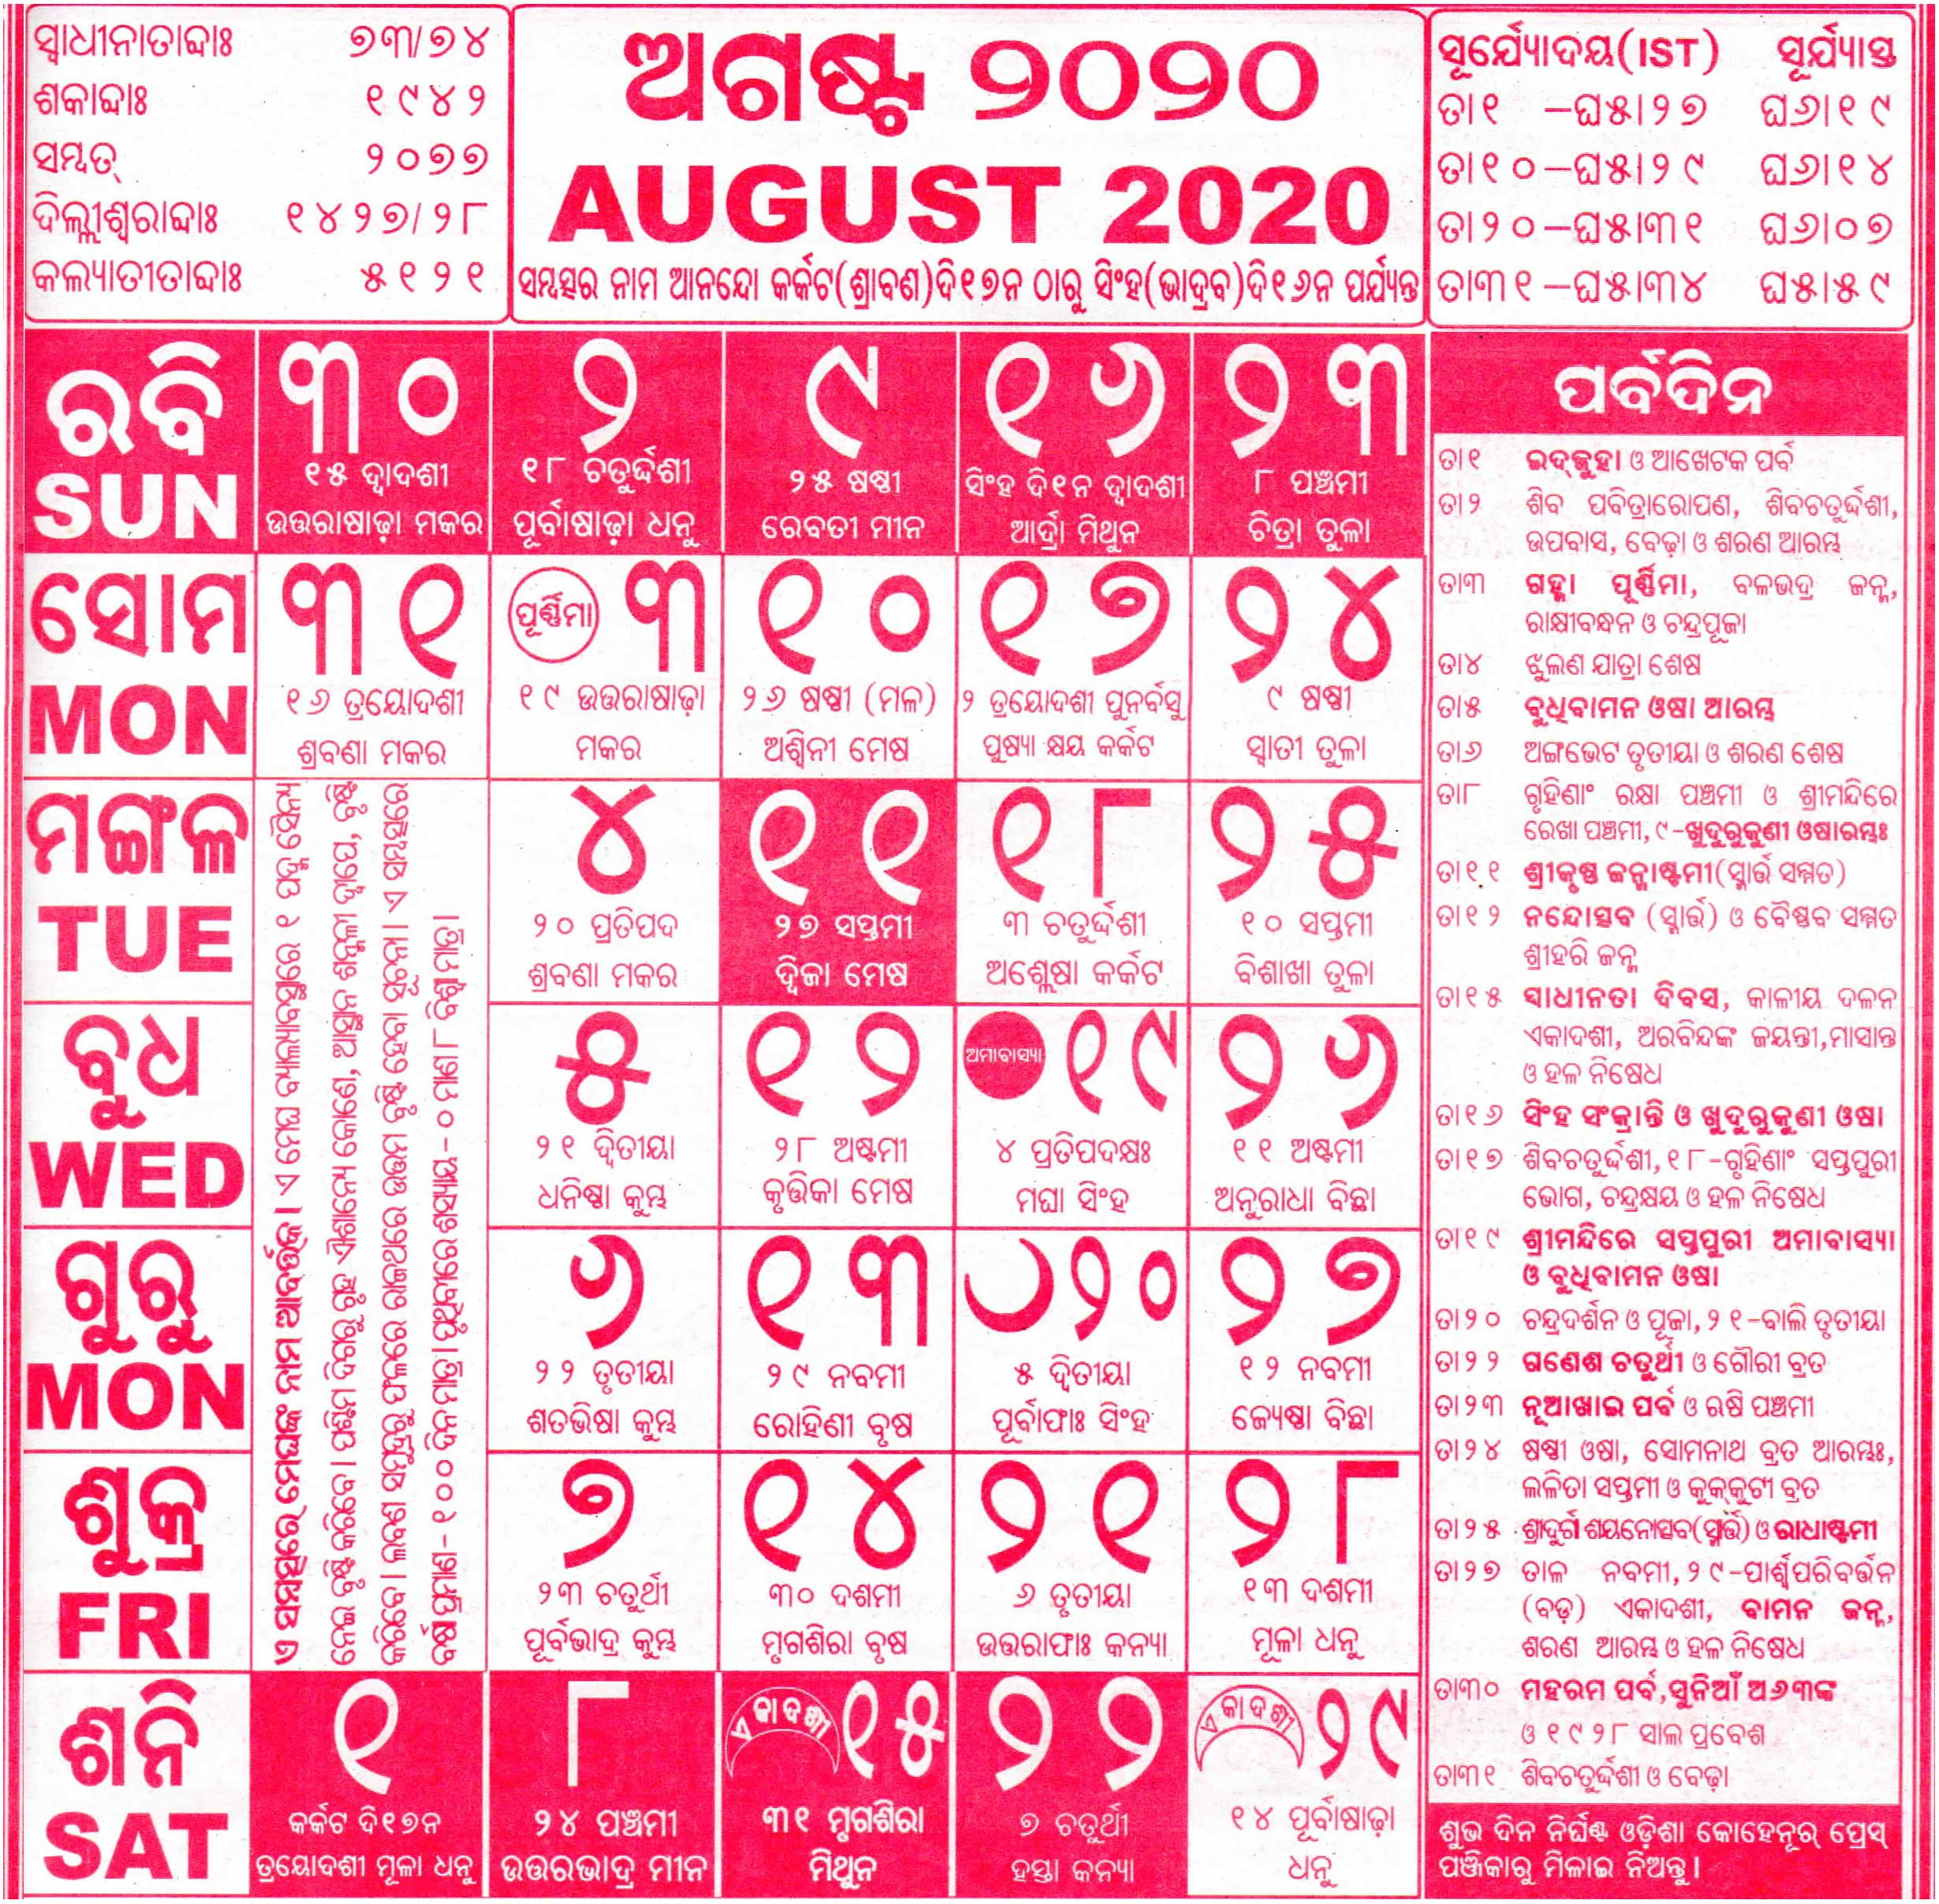 Odia Calendar August 2020 | | Calendarcraft throughout July 2020 Odia Calendar